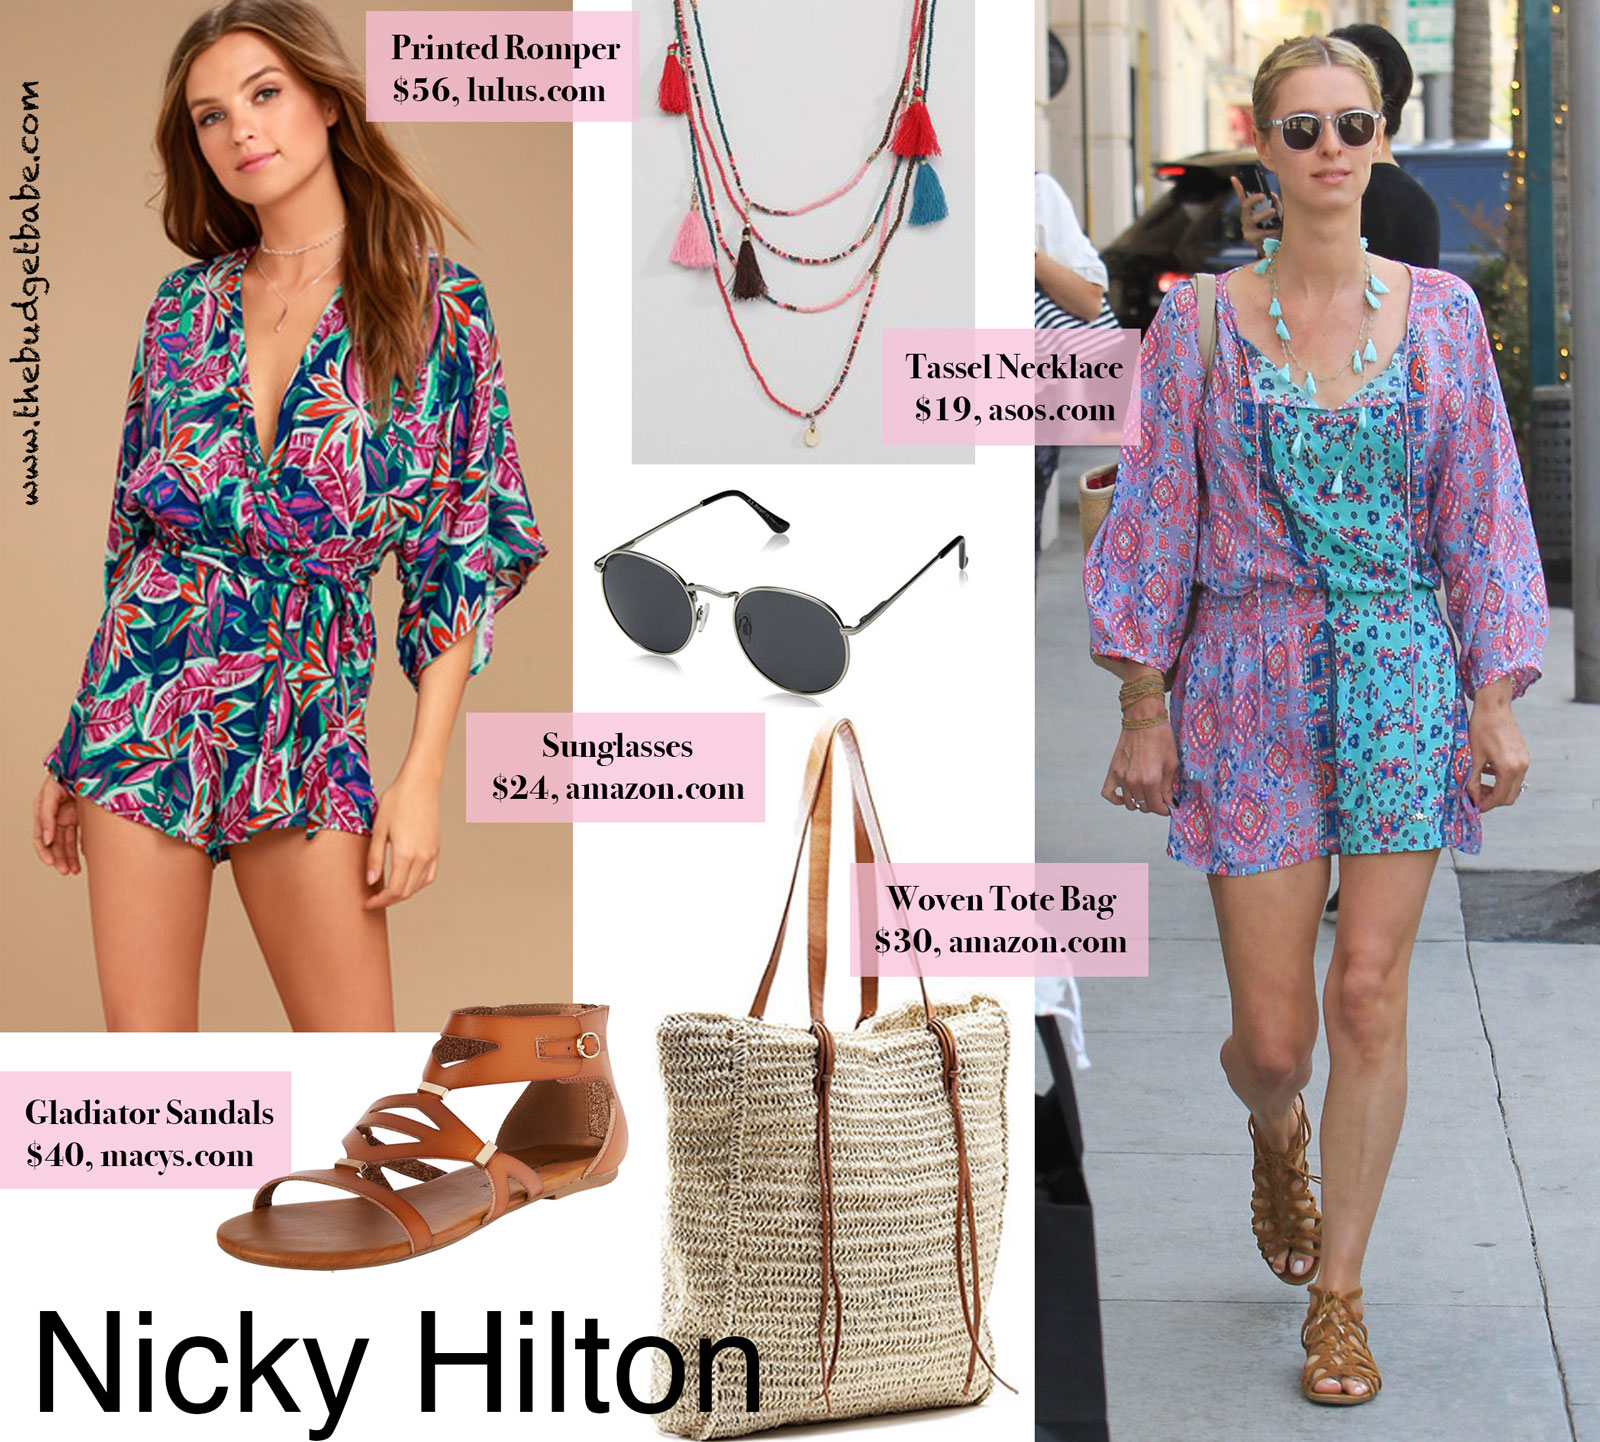 1f165314f627 Get the Look for Less  Nicky Hilton s Bright Printed Romper.